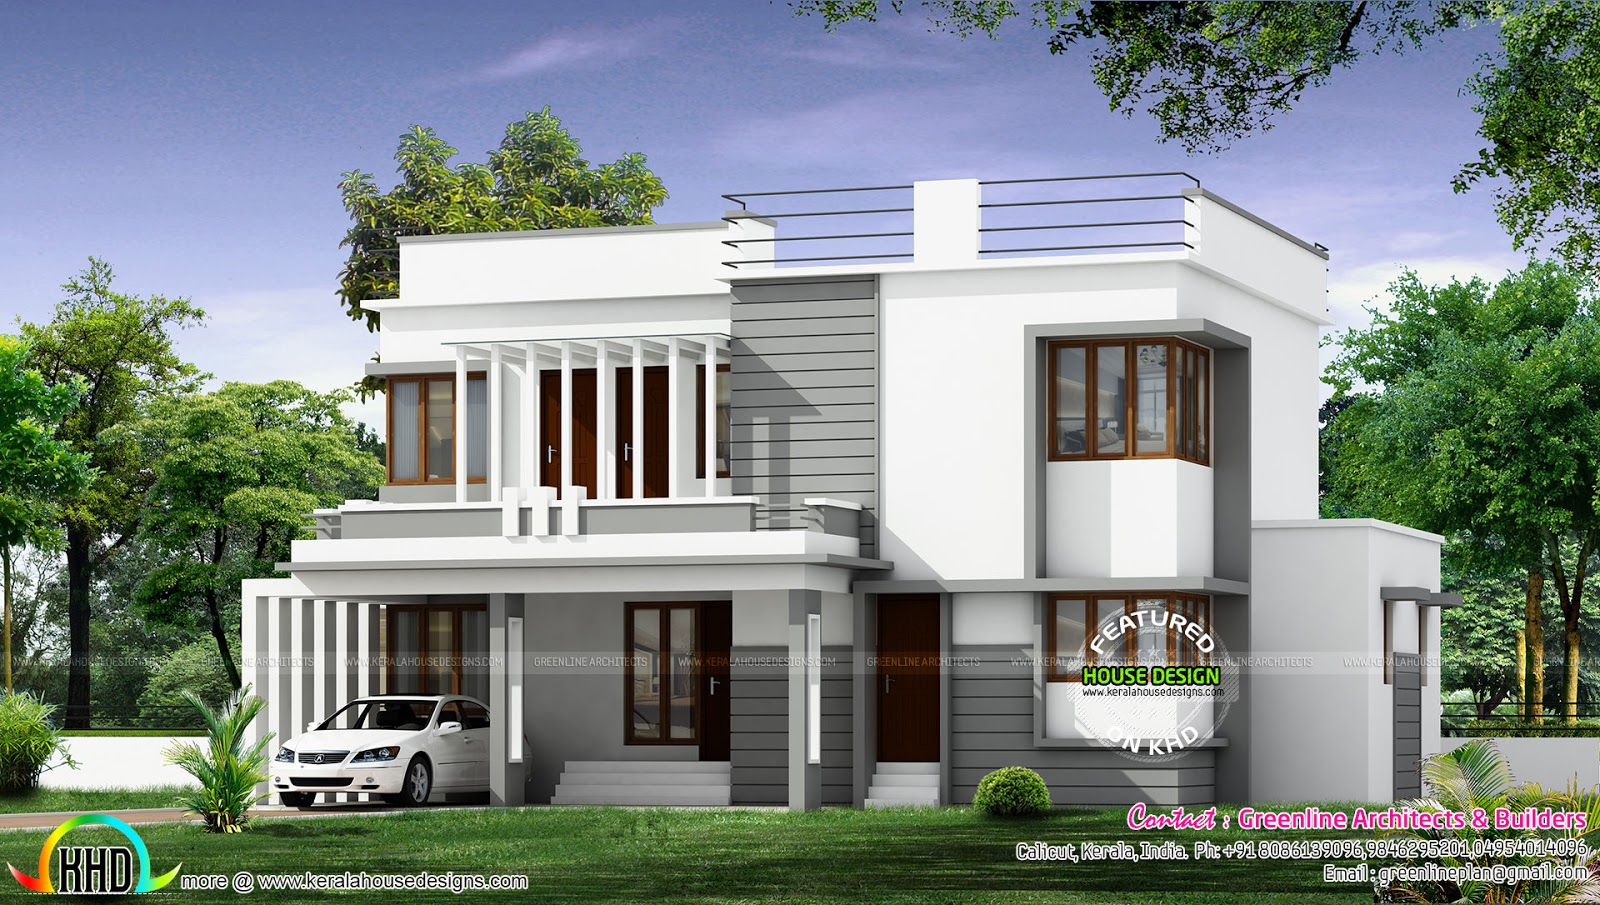 New modern house architecture kerala home design and for New house plans with pictures